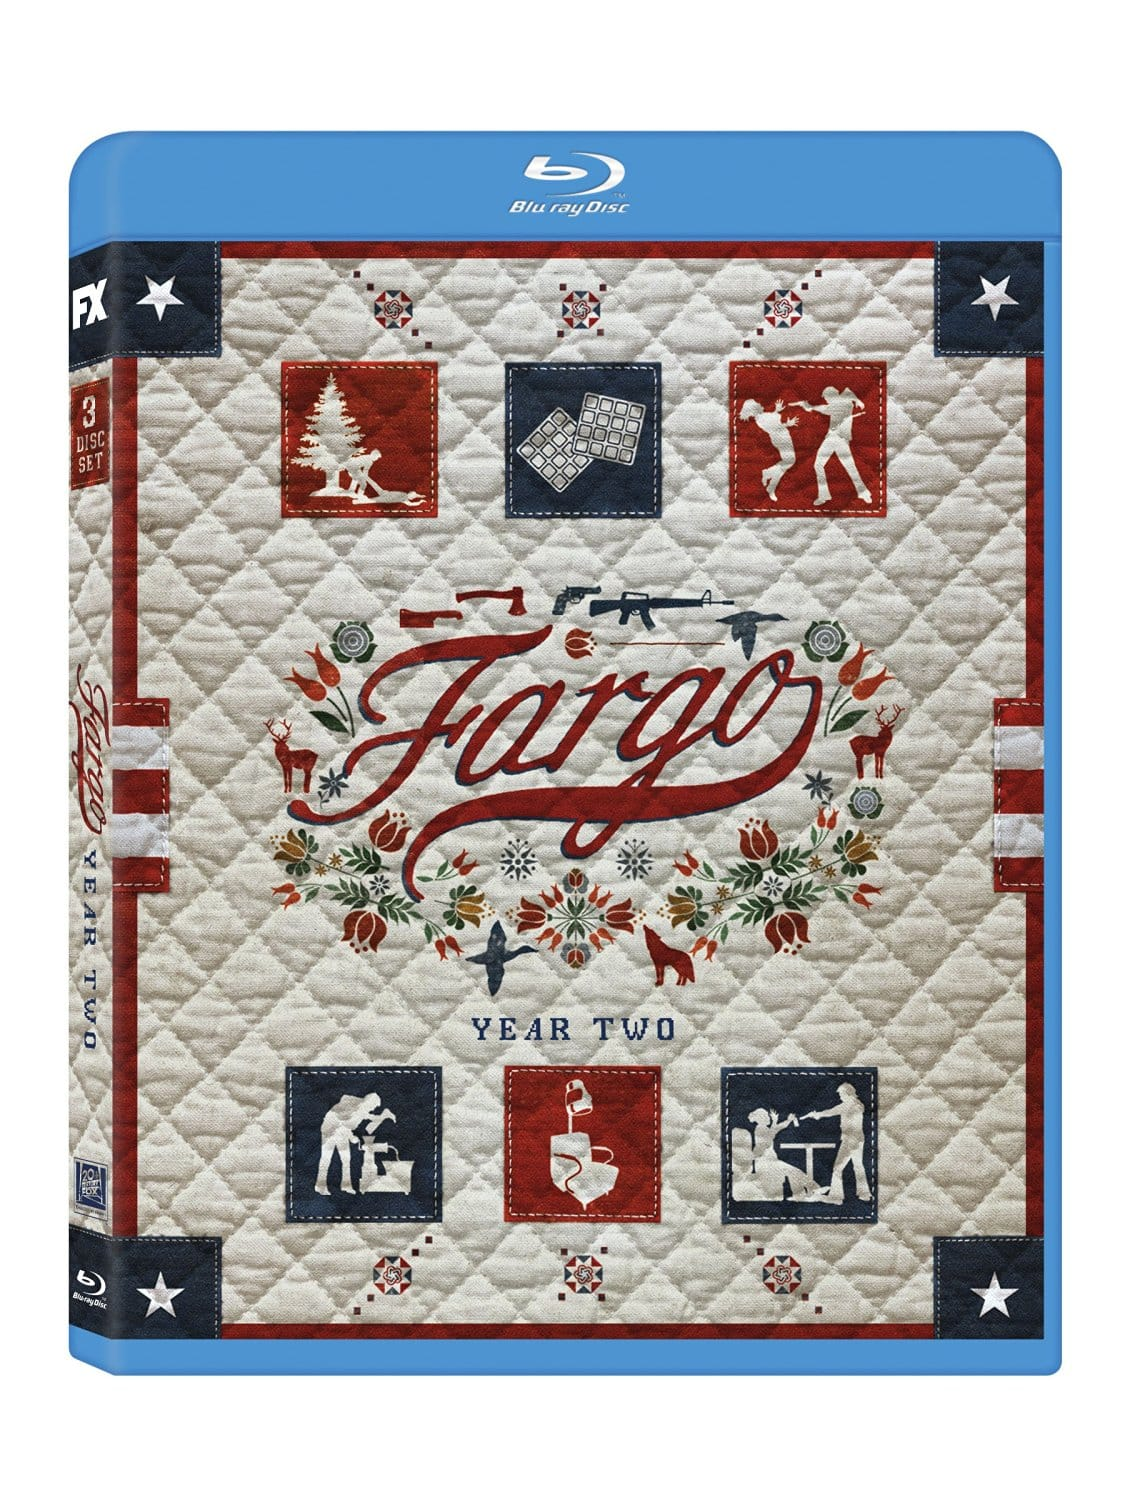 Fargo Season 2 (Blu-ray) $19.99 + Free Store Pickup @ Best Buy